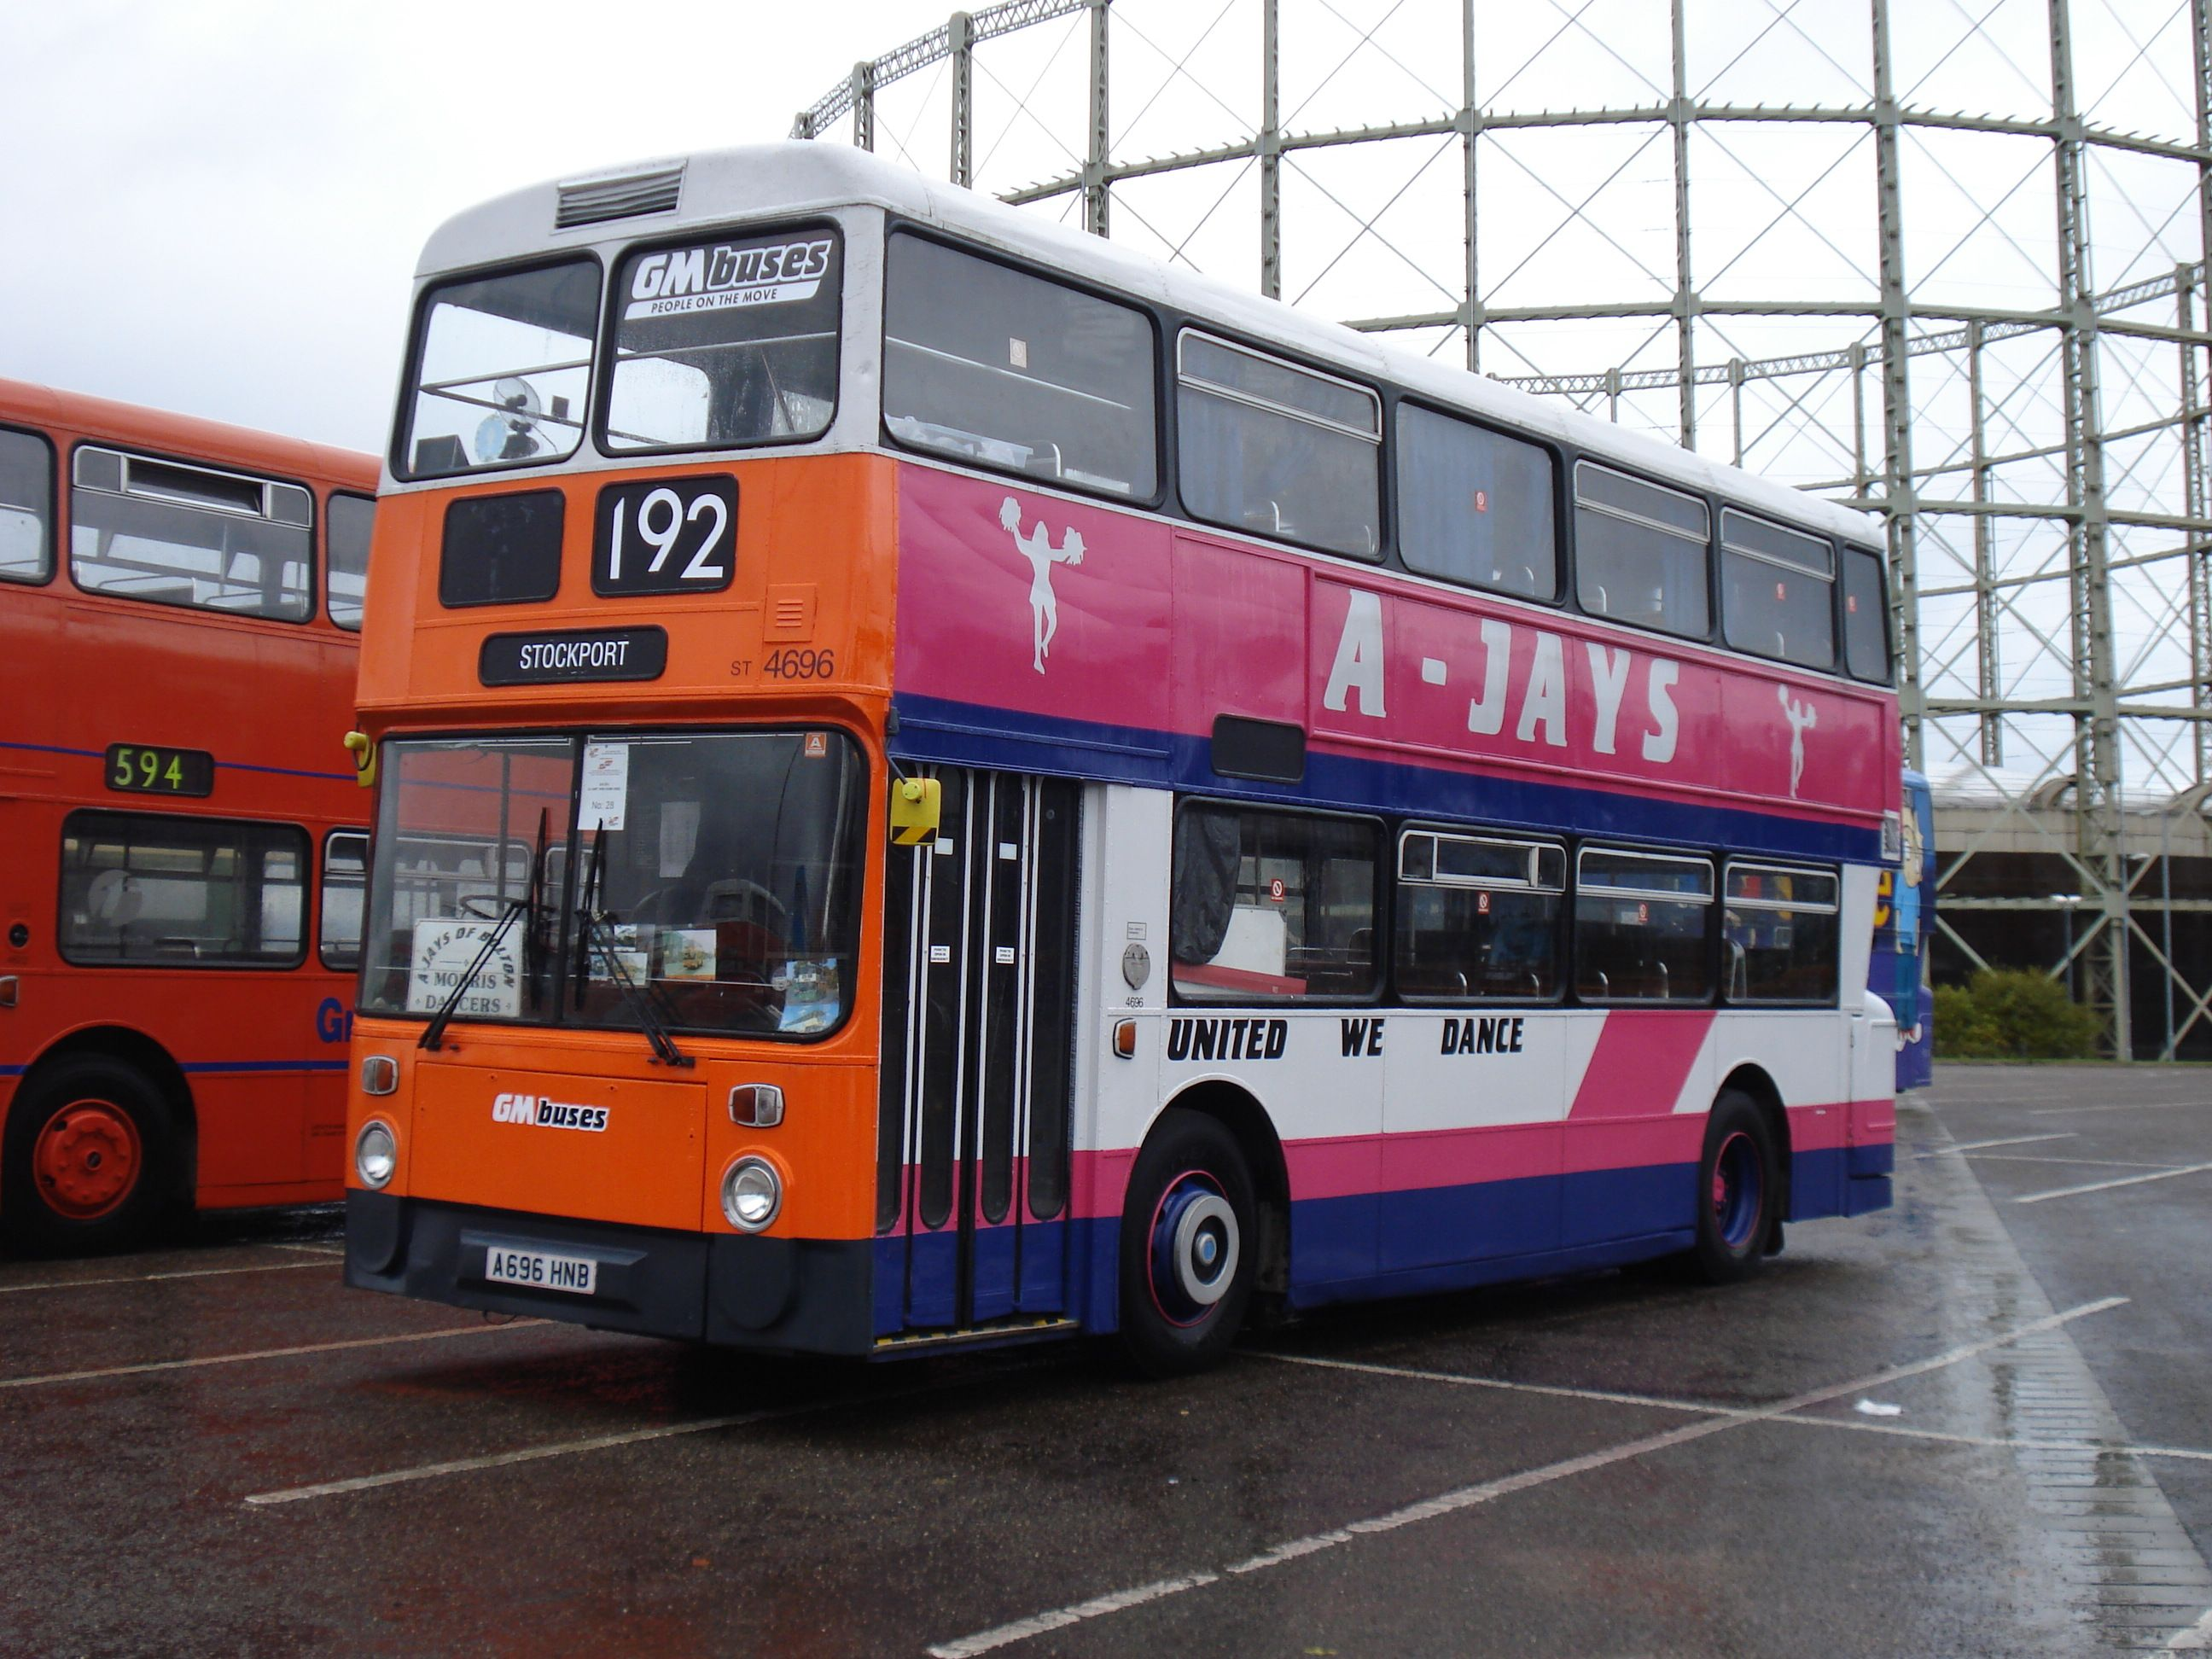 Roller skating hazel grove - Gm_buses I Remember This 192 Bus From Hazel Grove To Manchester Piccadilly It Used